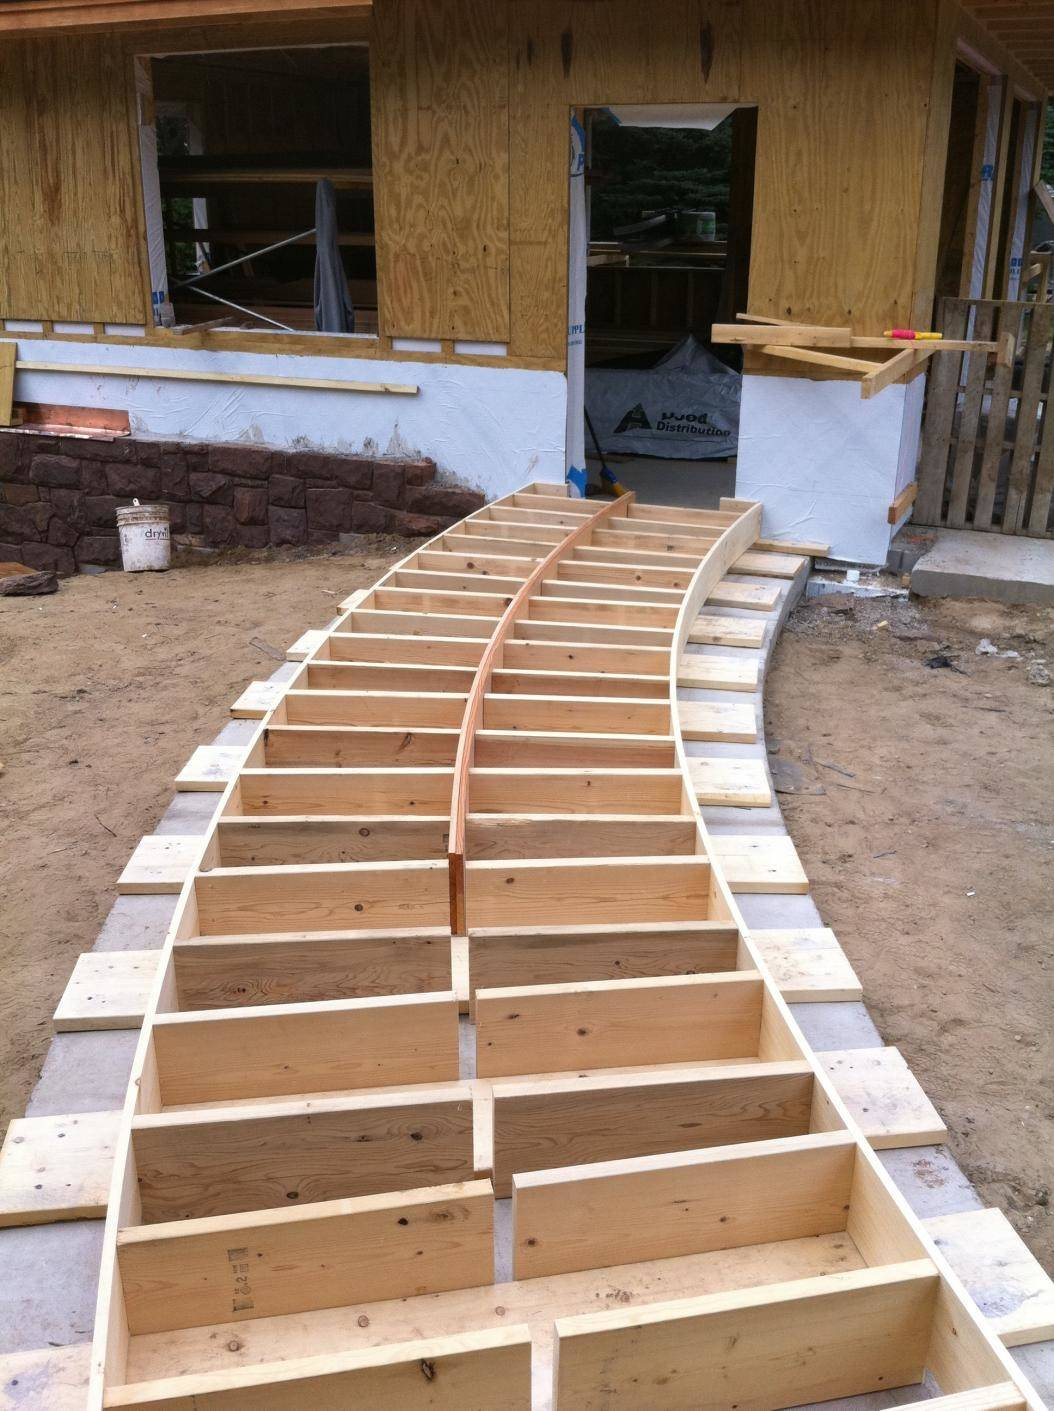 Chapter Build Curved Wooden Walkway Summer - The Inductive